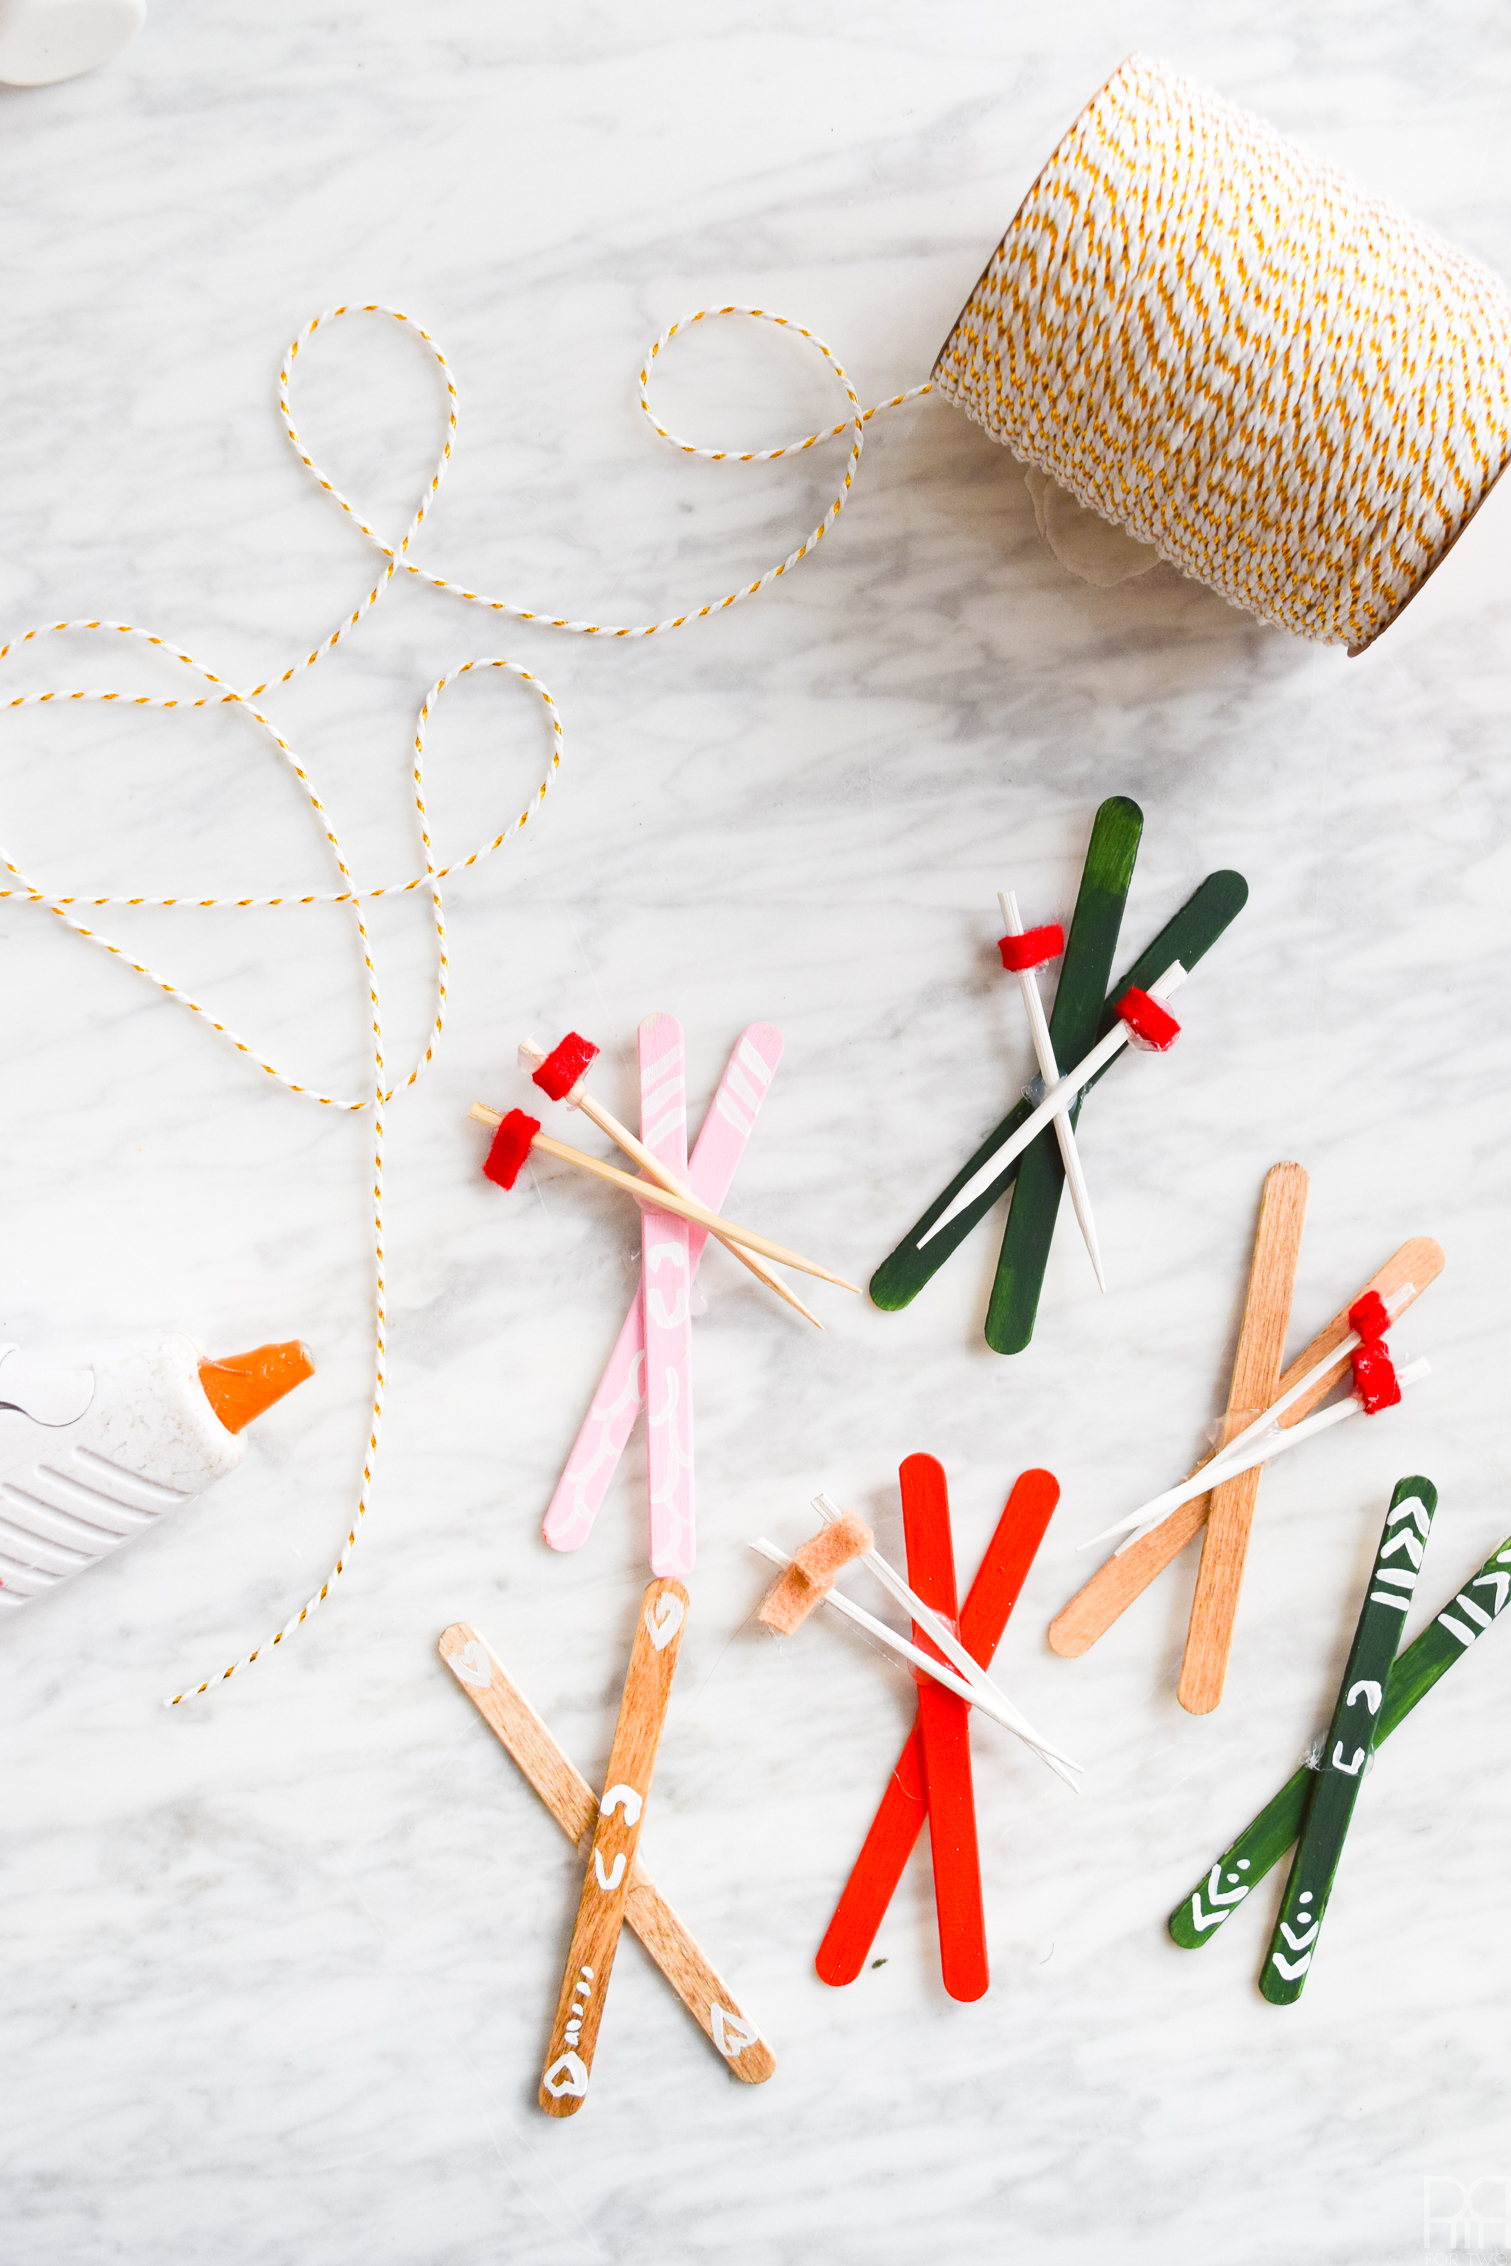 DIY Popsicle Skis are kind of the easiest craft out there, but it's worth checking out how I made my garland and food picks / swizzle sticks, so that all your winter decor needs are met ;)